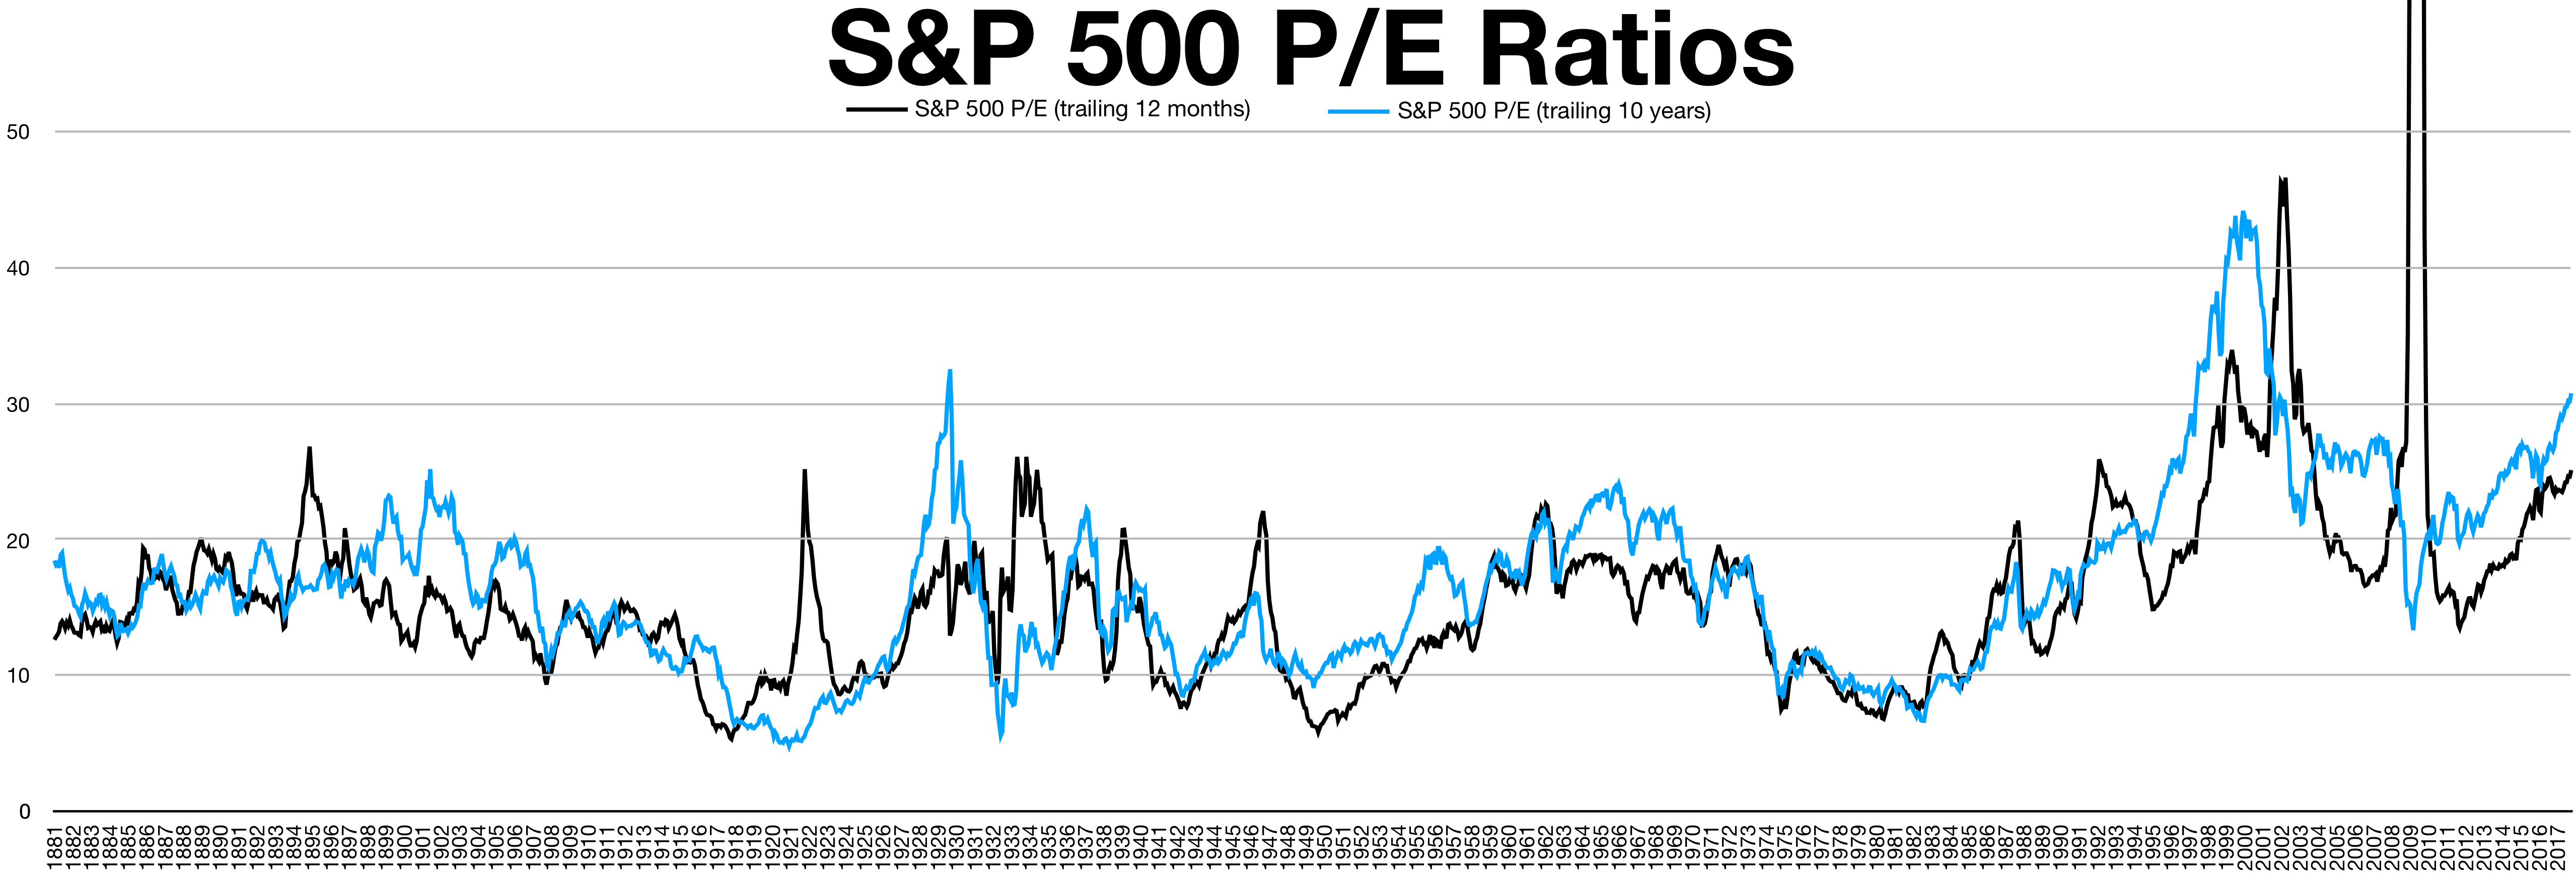 Cyclically adjusted price-to-earnings ratio - Wikipedia